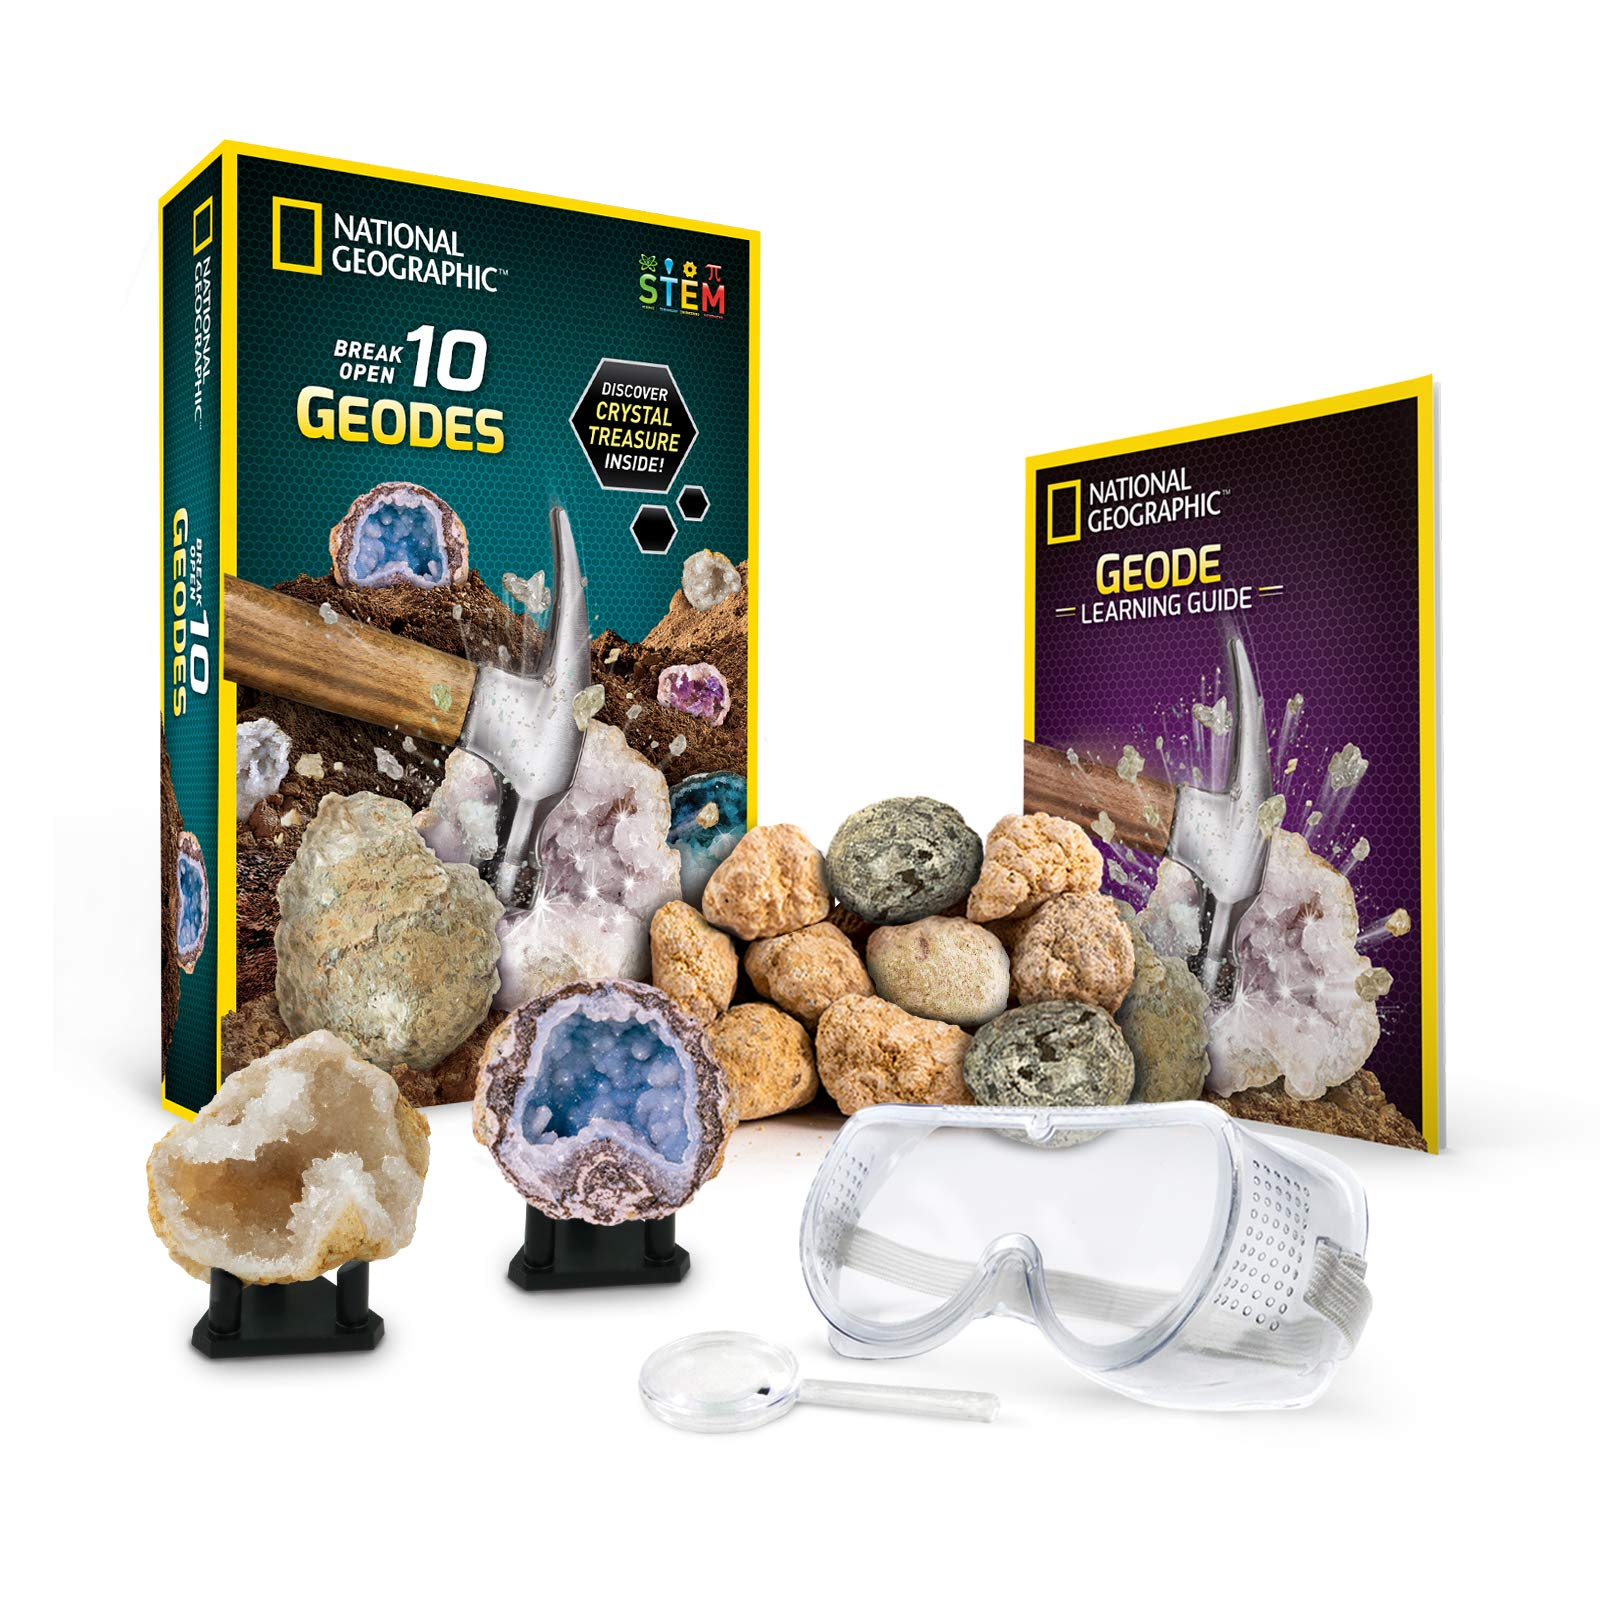 National Geographic Break Open 10 Premium Geodes - Includes Goggles, Detailed Learning Guide & 2 Display Stands - Great Stem Science Gift for Mineralogy & Geology Enthusiasts of Any Age by NATIONAL GEOGRAPHIC